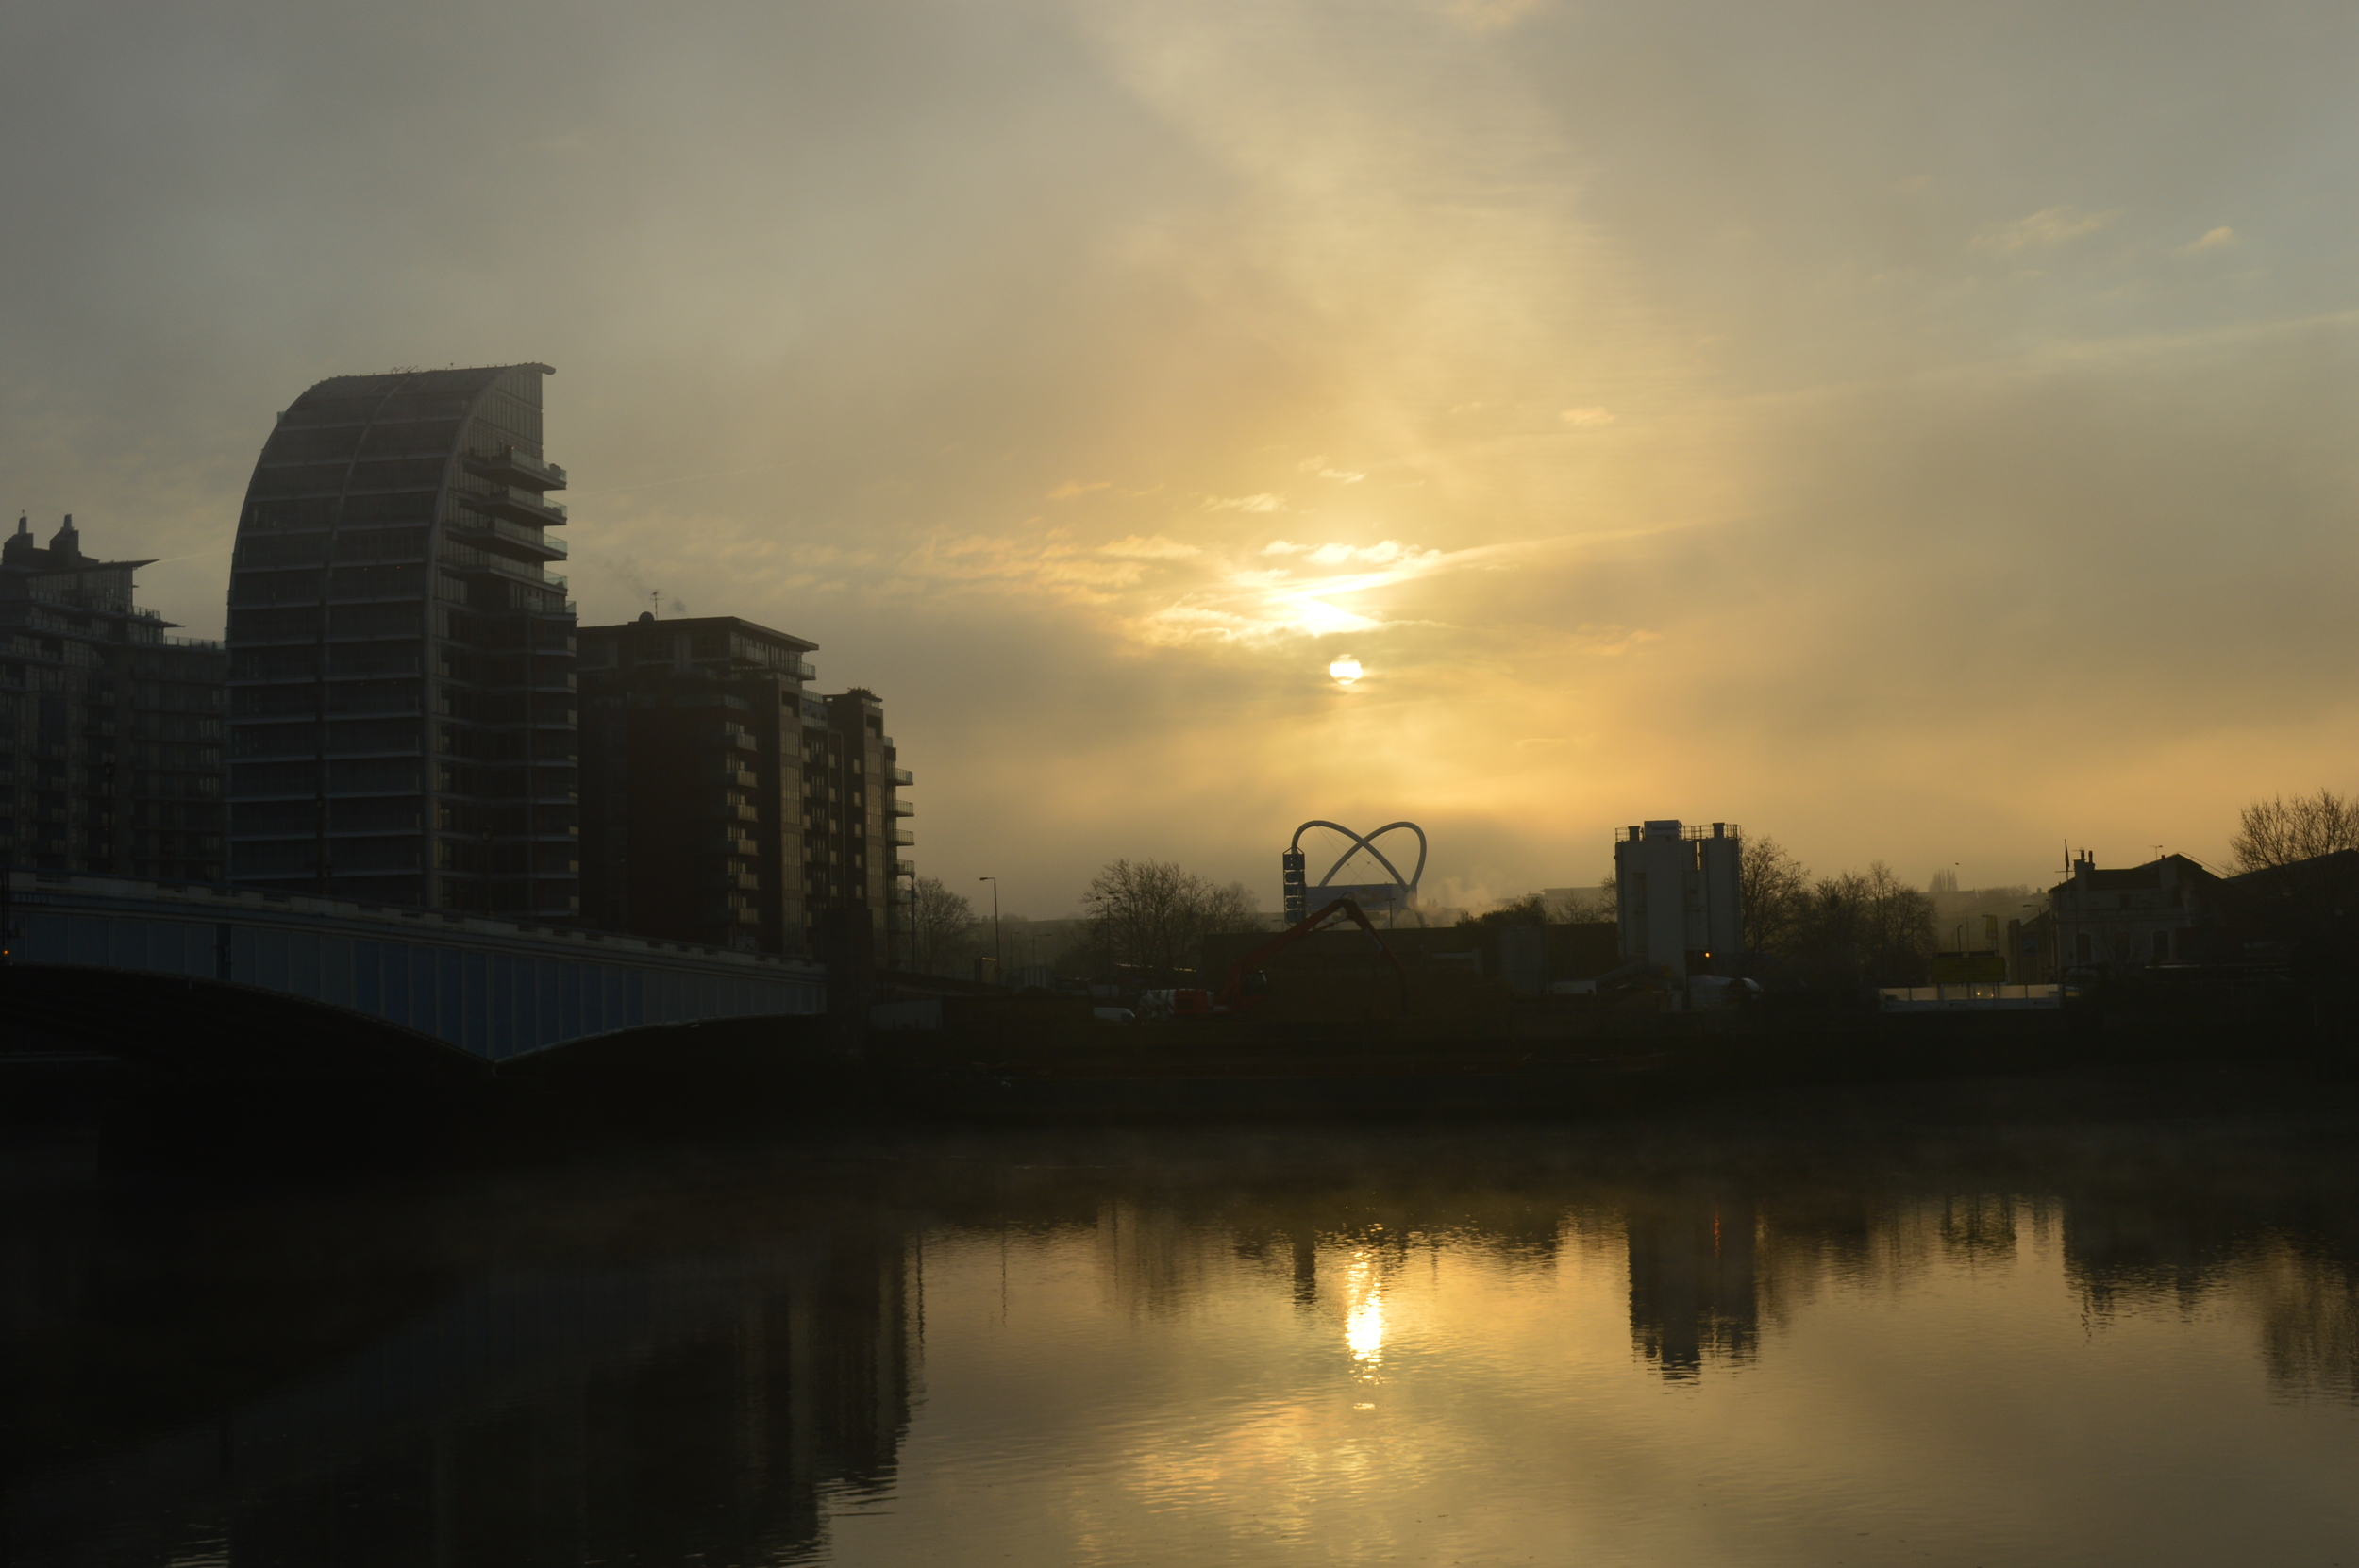 The River Thames by Wandsworth Bridge